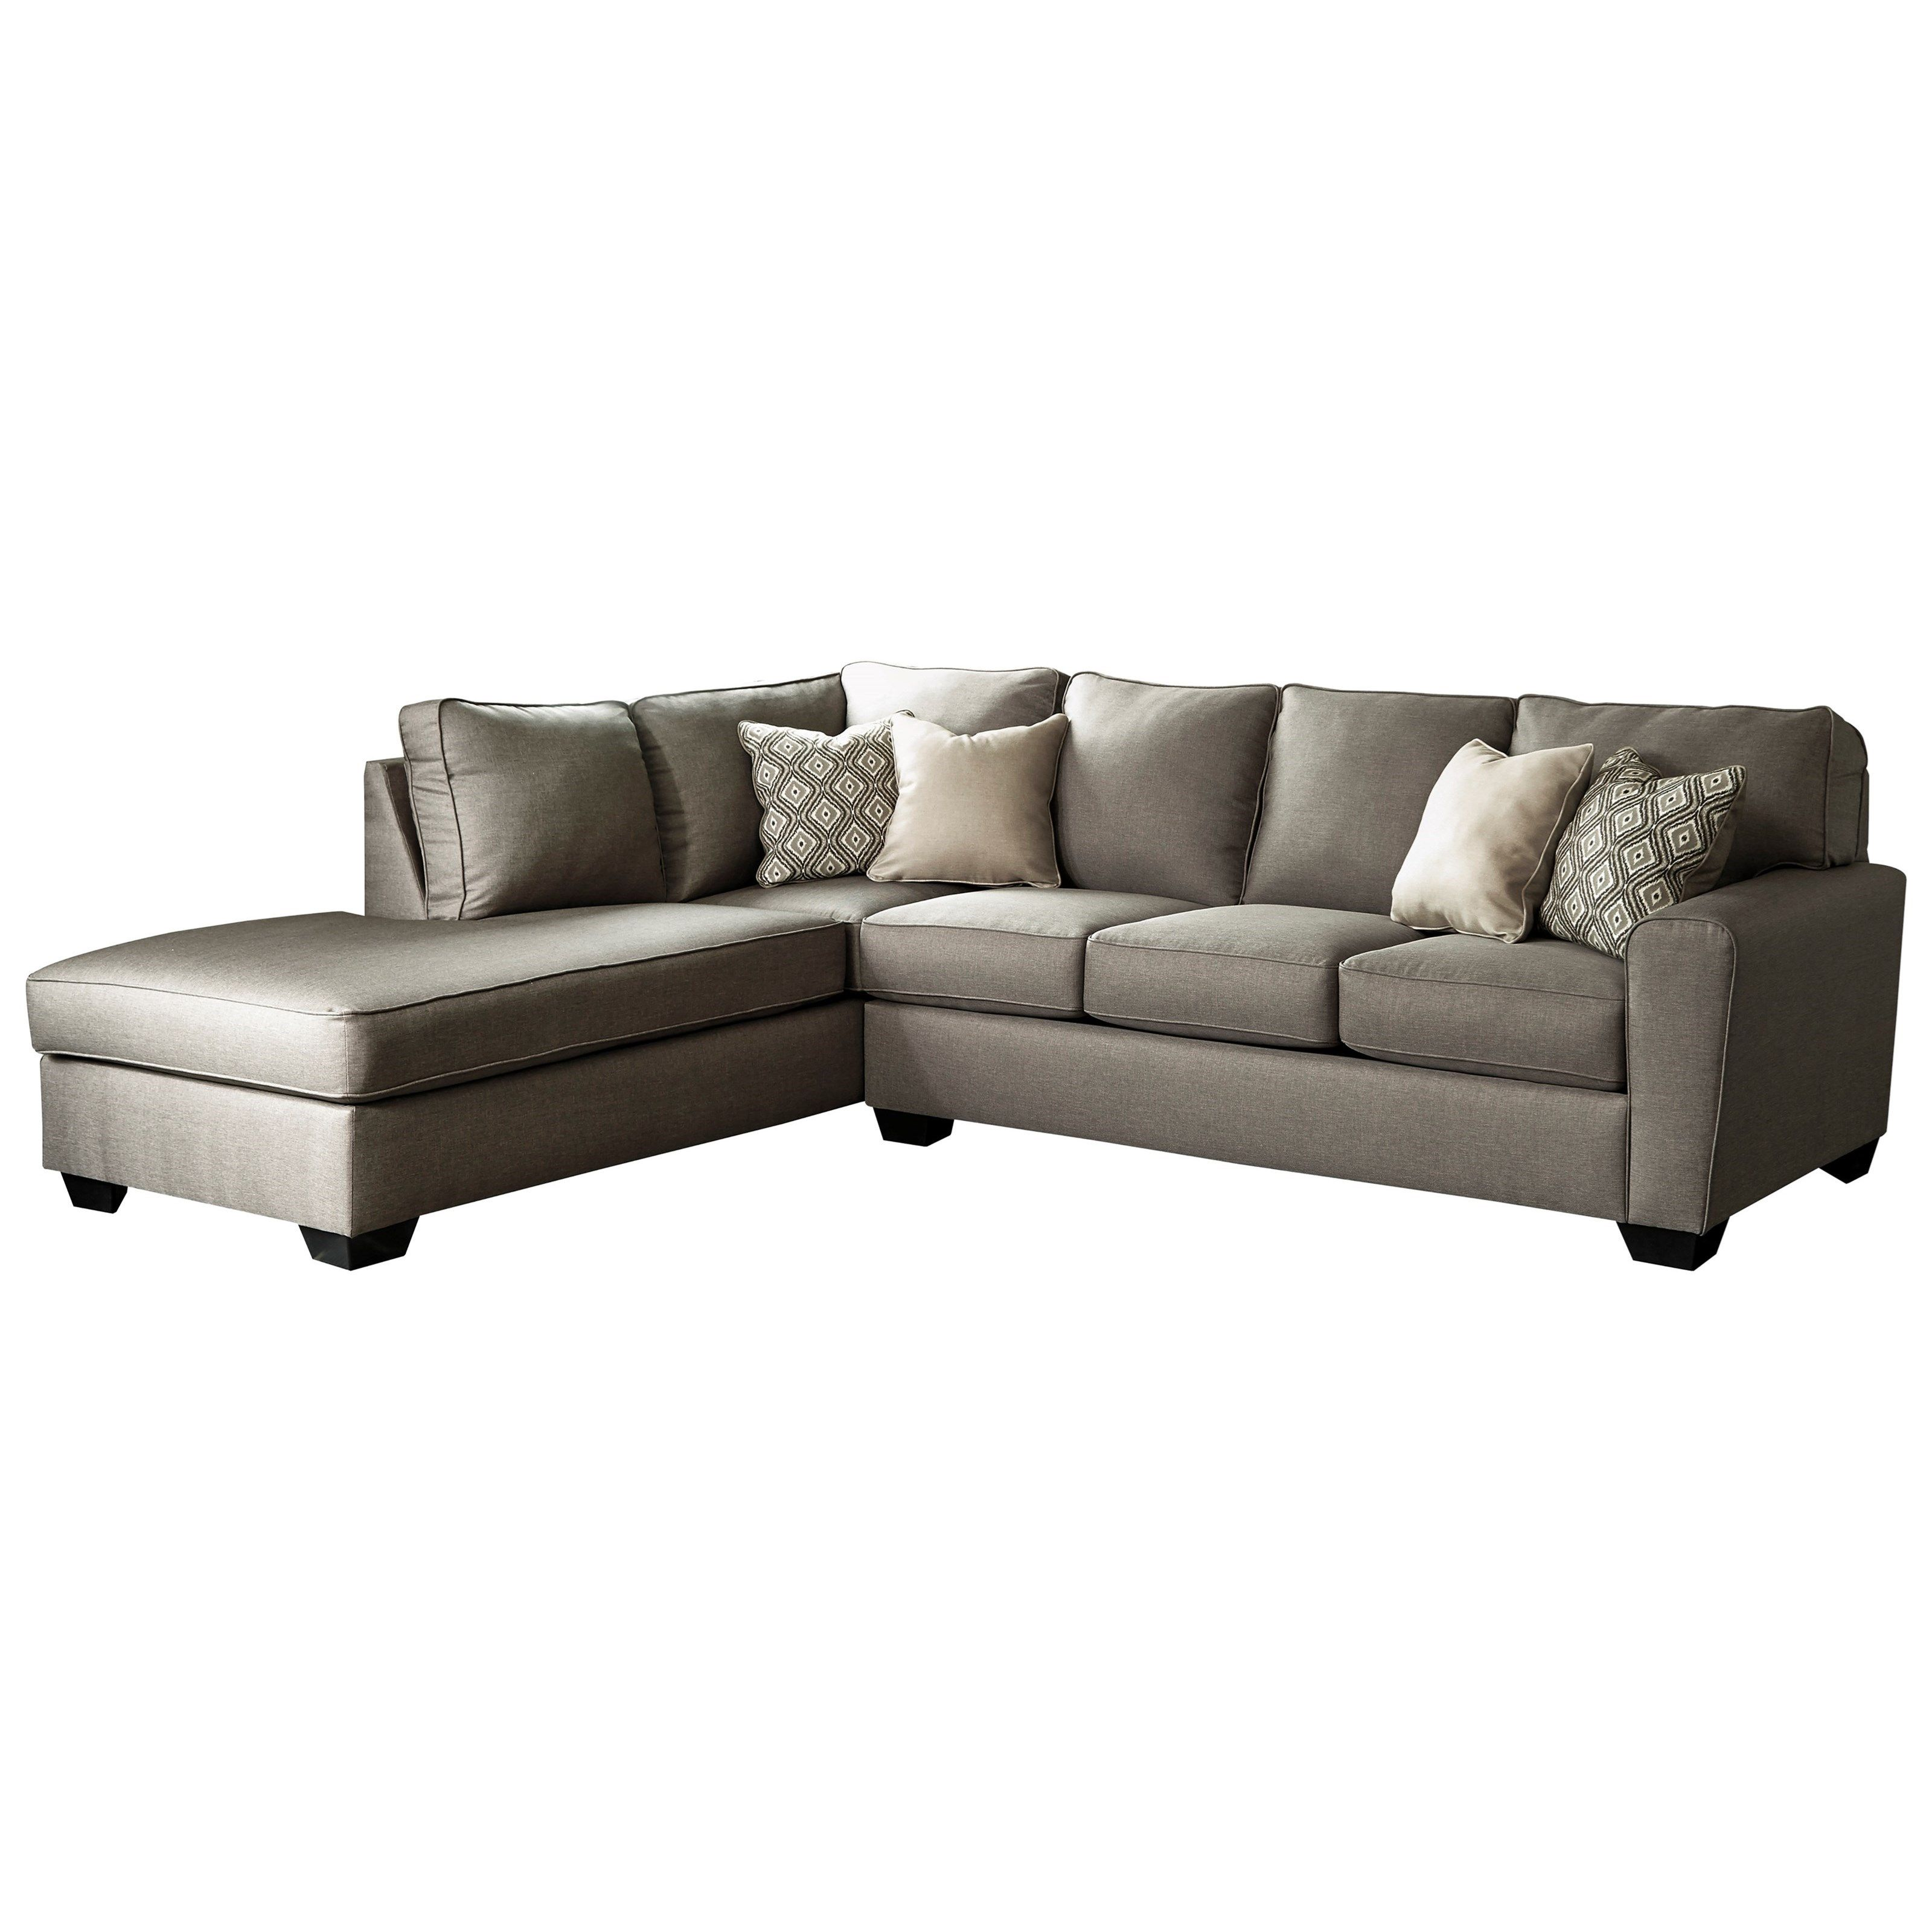 1135 At Wolf S 115 X 90 Contemporary Sectional With Left